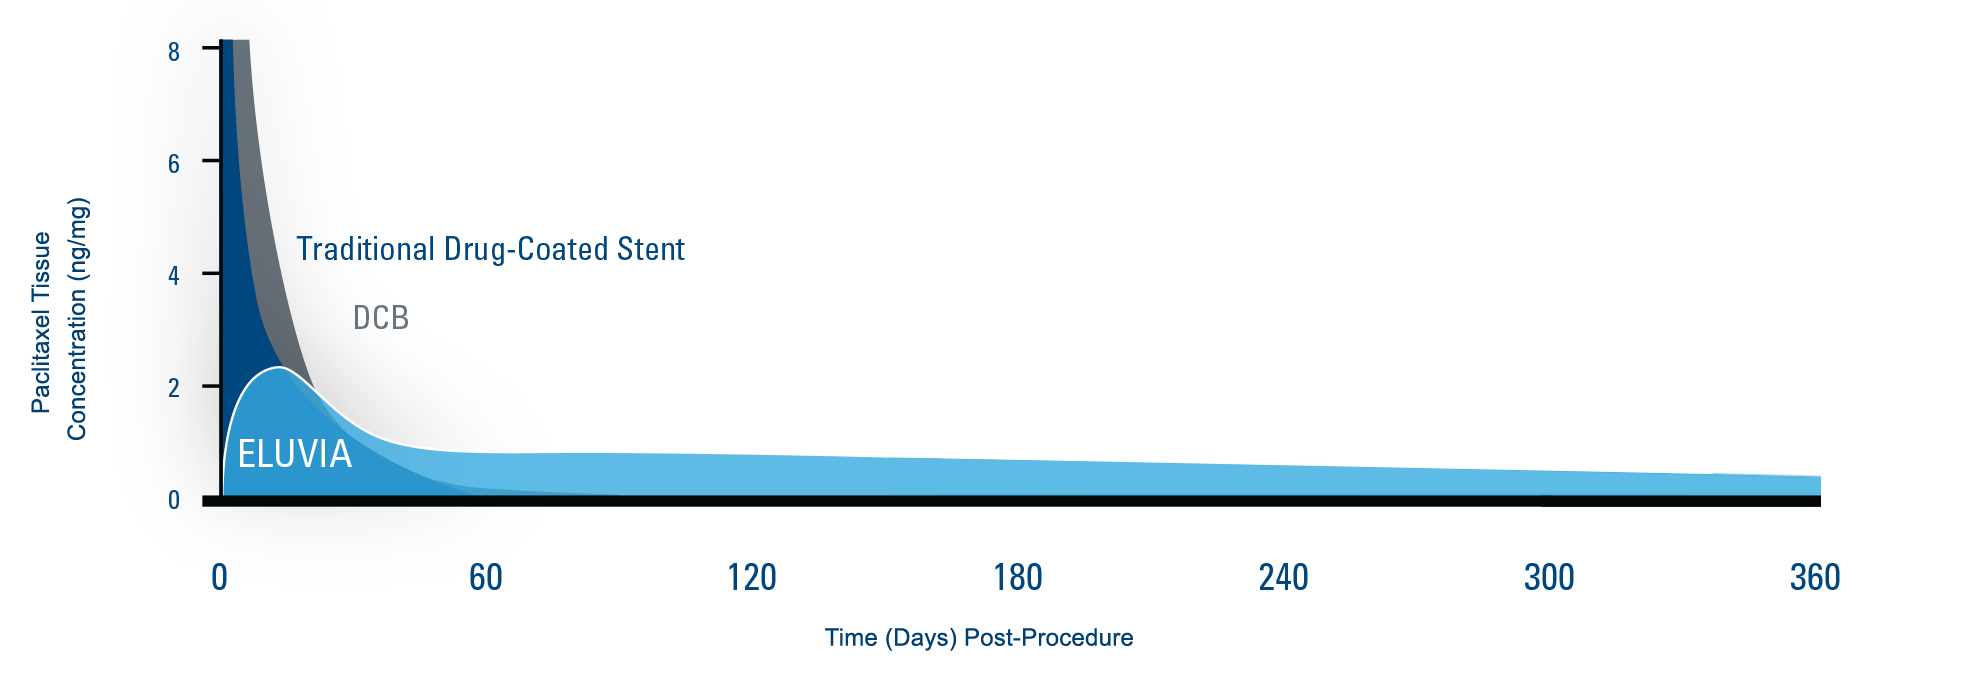 Chart comparing paclitaxel release over time for the Eluvia Drug-Eluting Stent, drug-coated balloons and traditional drug-coated stents.